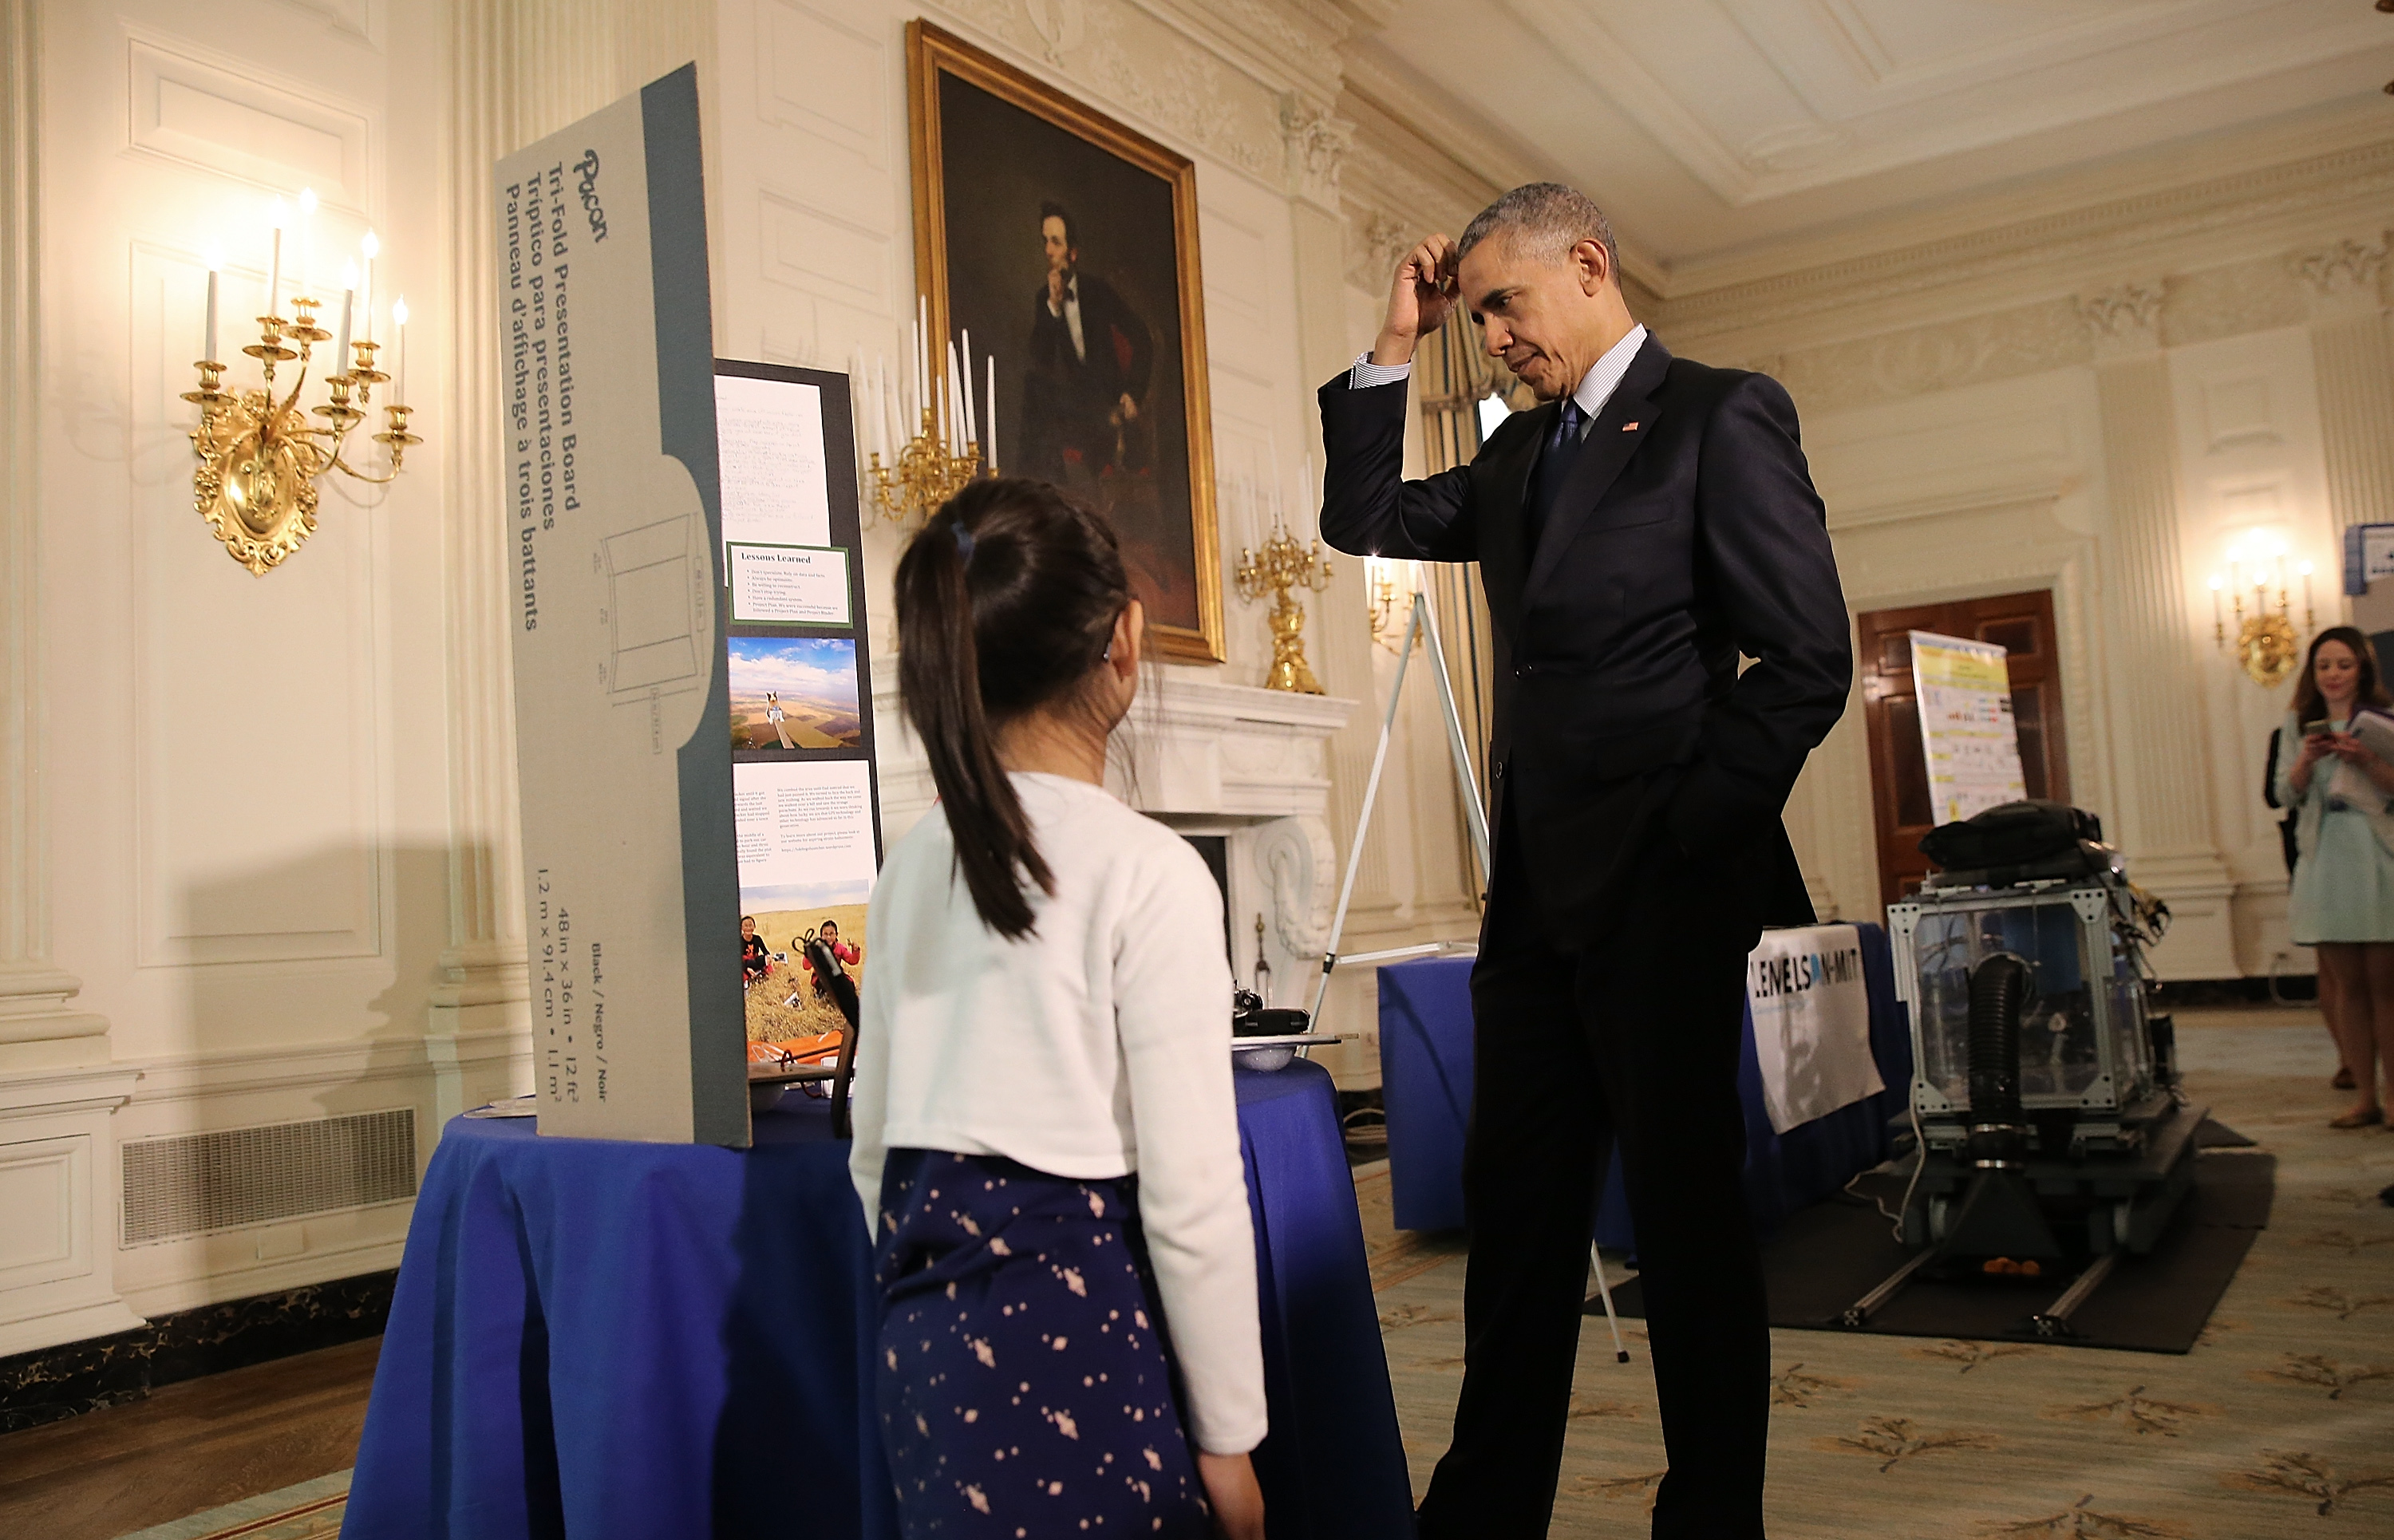 U.S. President Barack Obama listens to sisters Kimberly Yeung (L) and Rebecca Yeung  explain their science project while touring exhibits at the White House Science Fair April 13, 2016 in Washington, D.C.